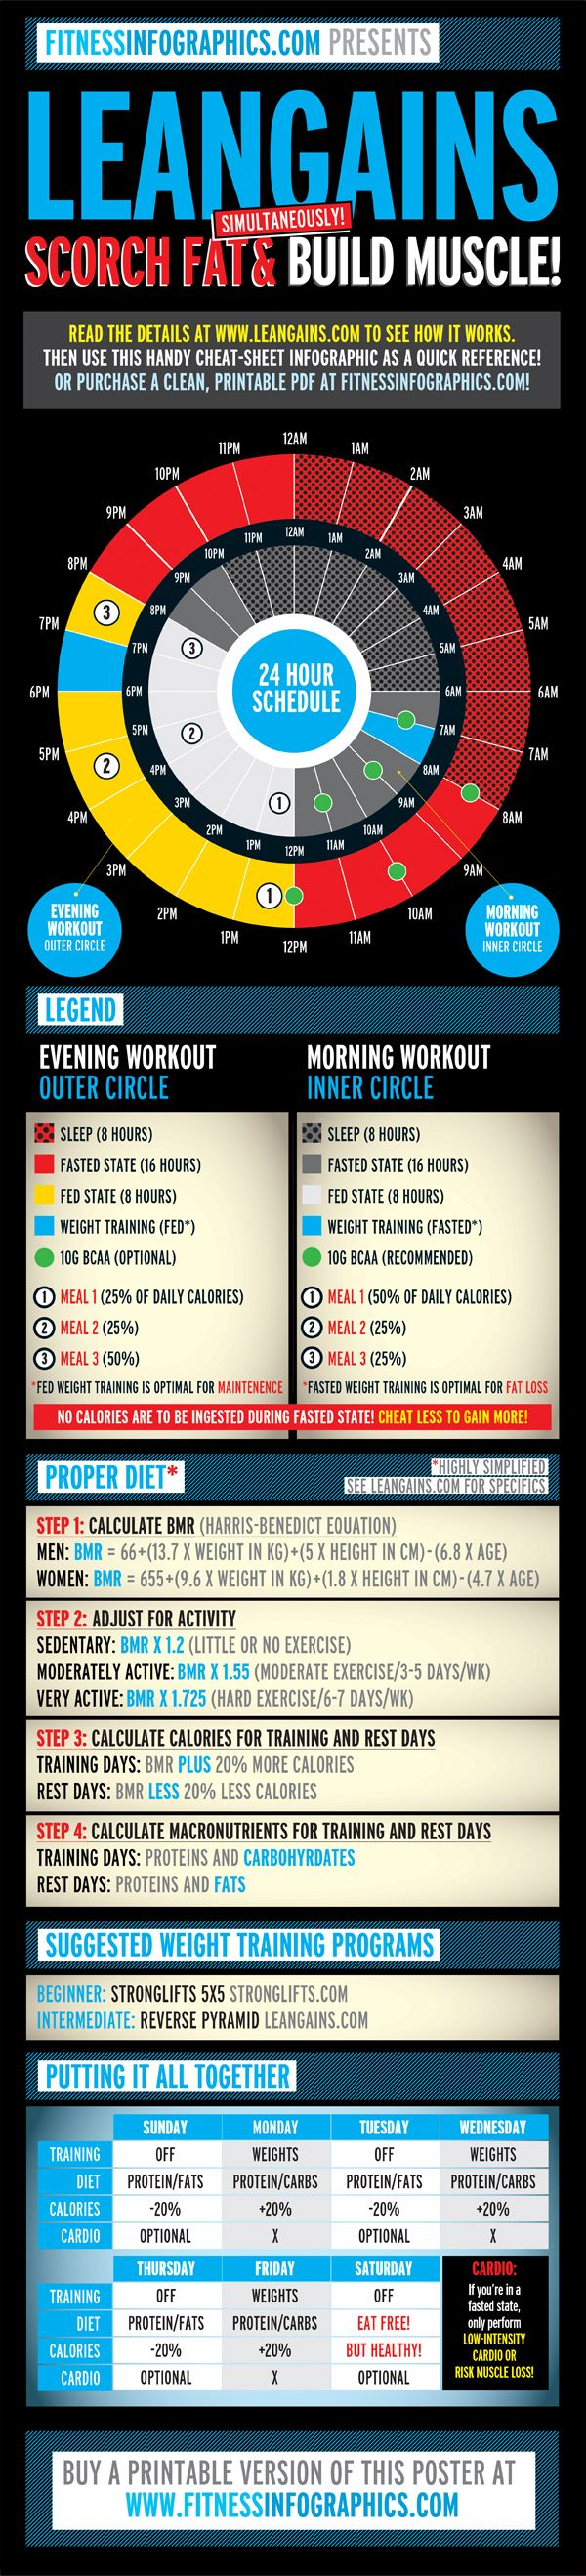 Burn fat & build muscle! [infographic] Via @Tribesports